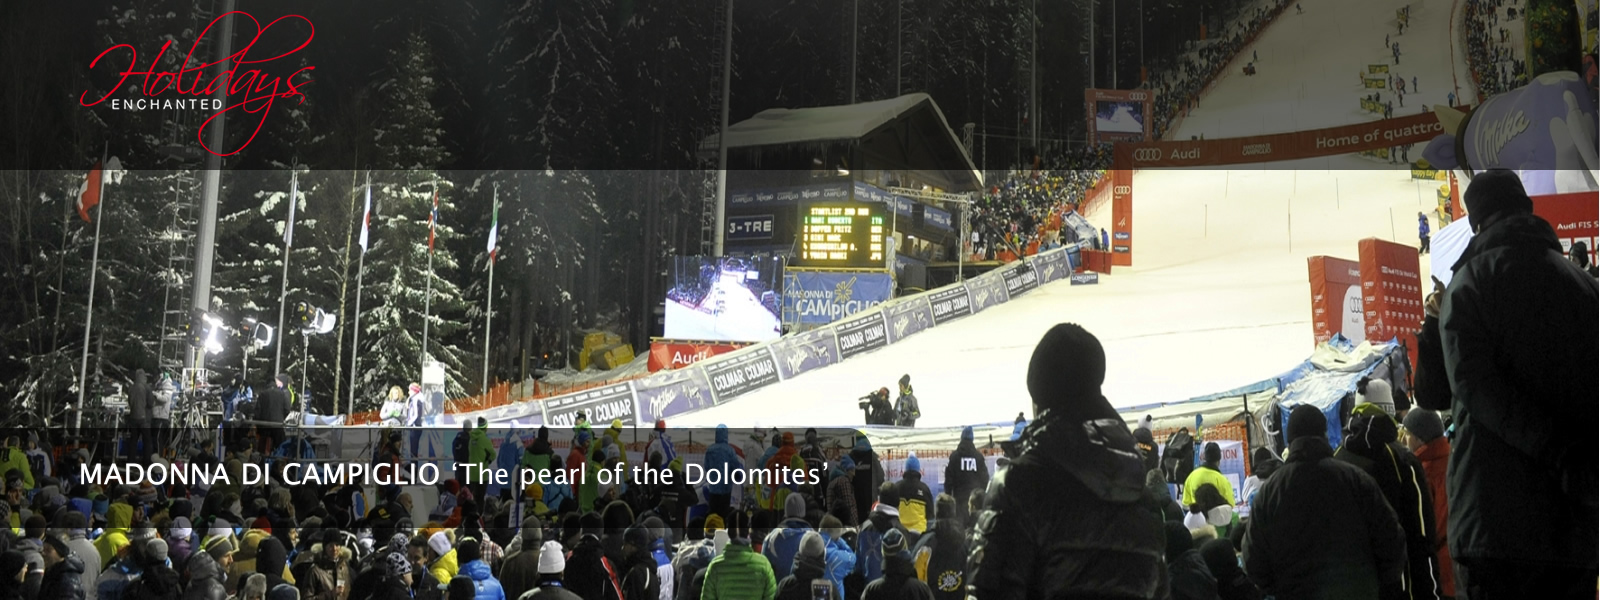 3tre FIS Ski World Cup at Madonna di Campiglio